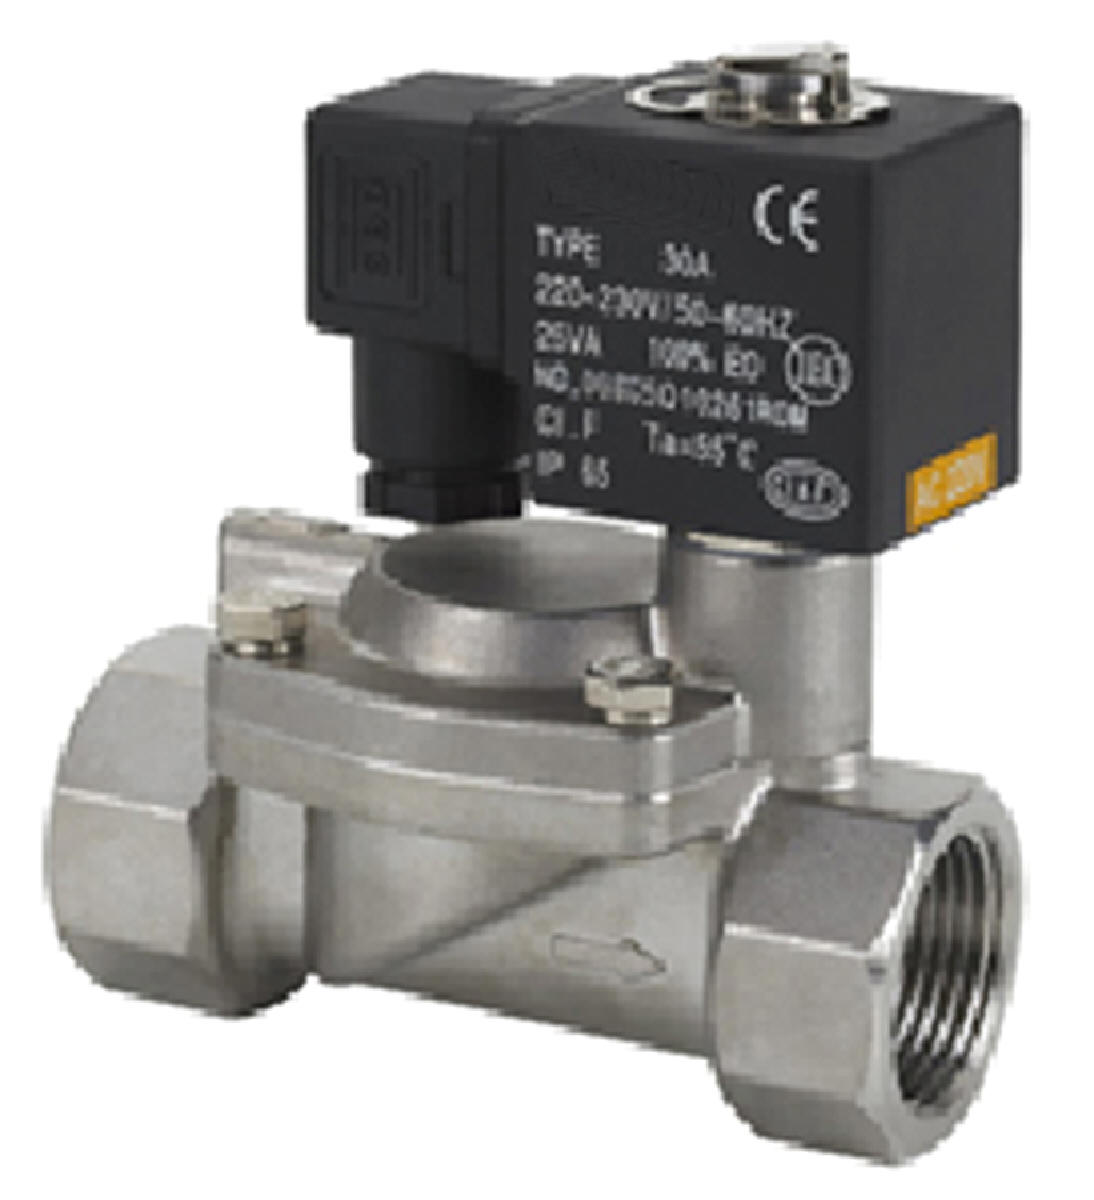 1//2 Inch High Pressure Stainless Steel Steam Solenoid Process Valve 220V AC PTFE